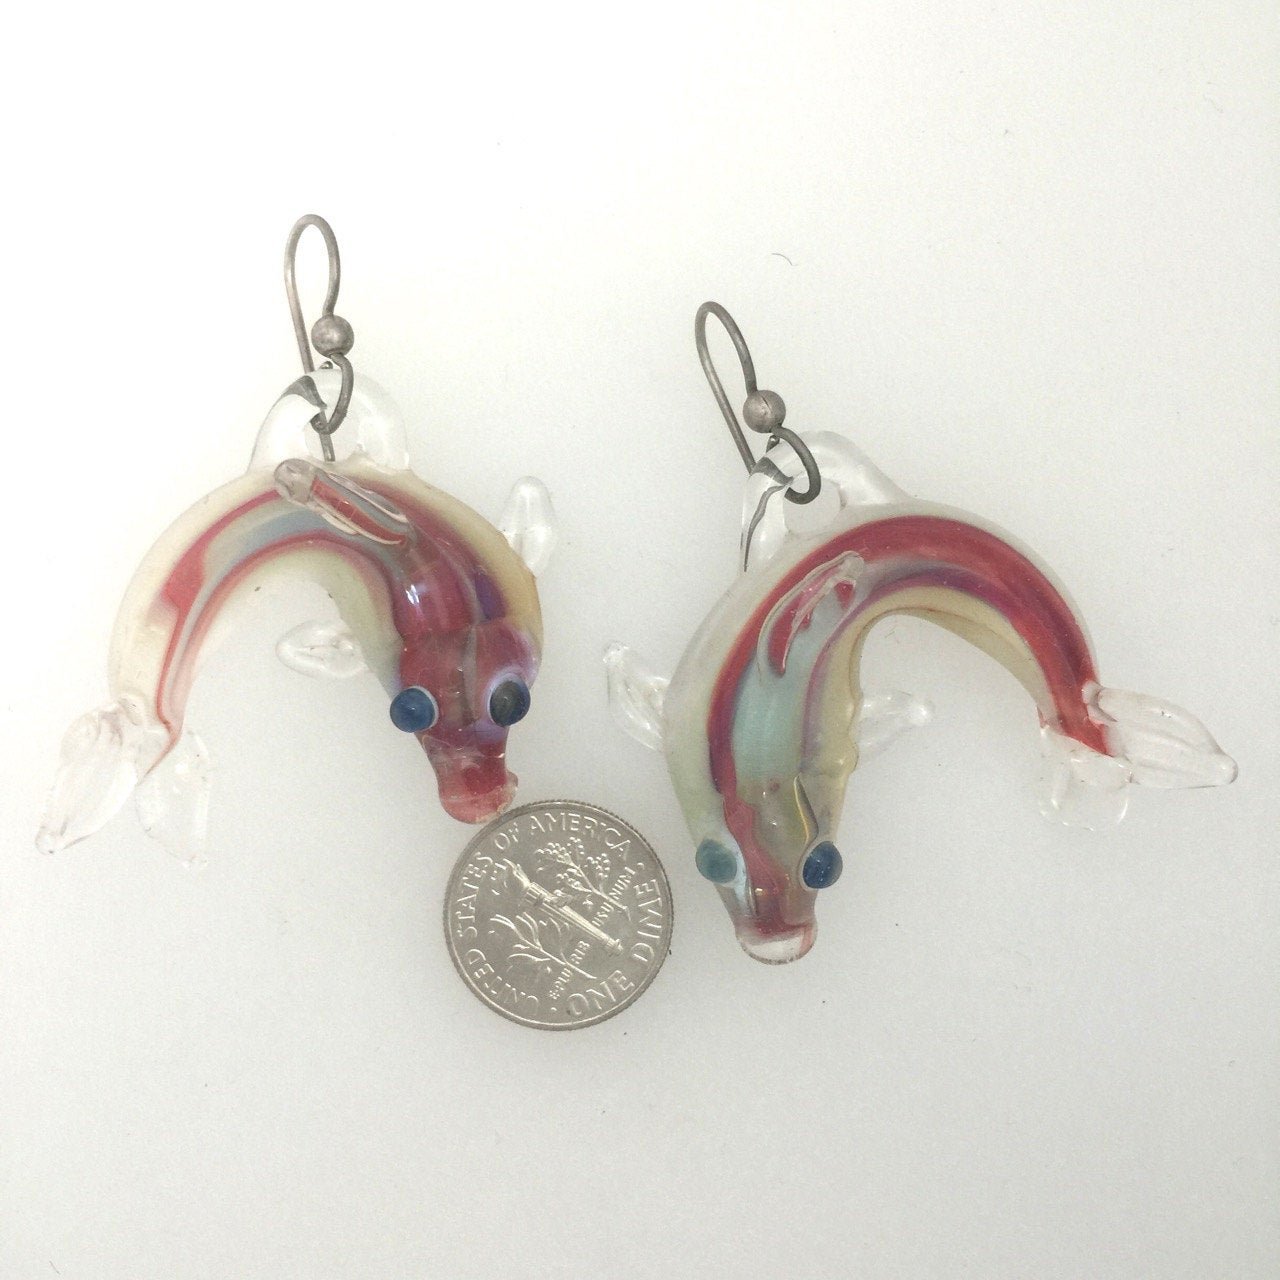 Fish Boro Earrings Jim Smircich